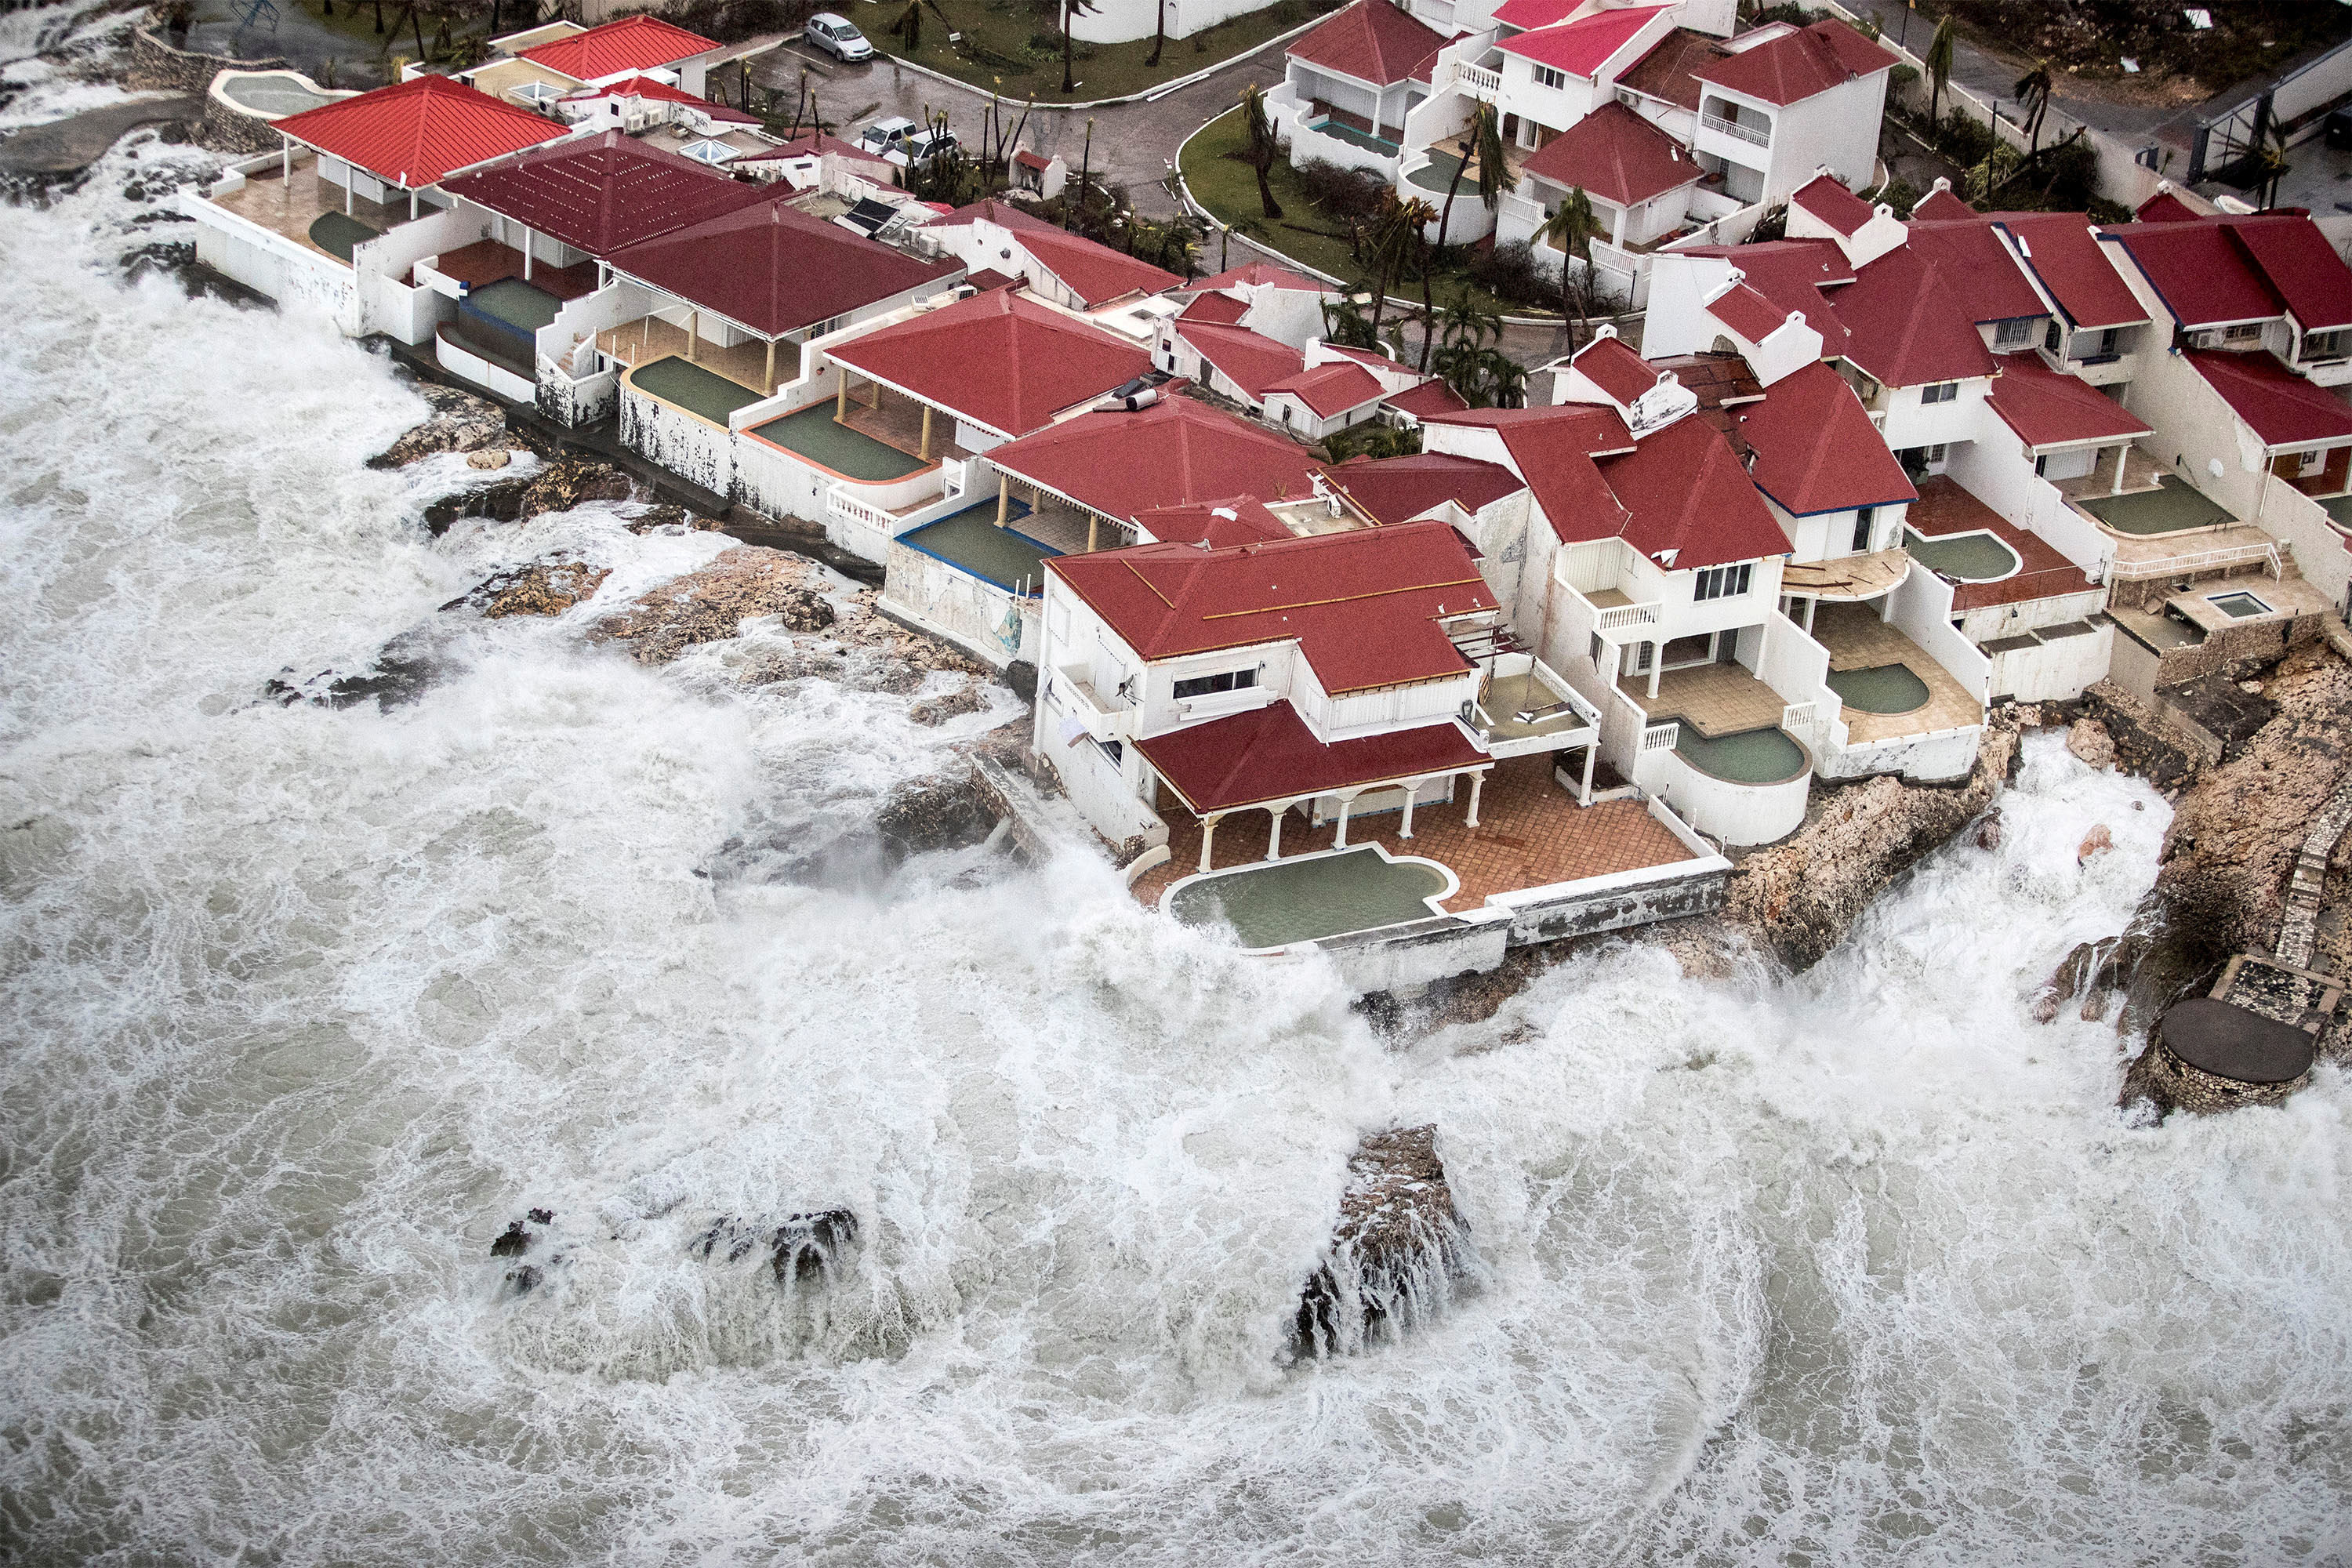 Waves crash around buildings on Saint Martin island. Photo by Netherlands Ministry of Defense/Handout via Reuters